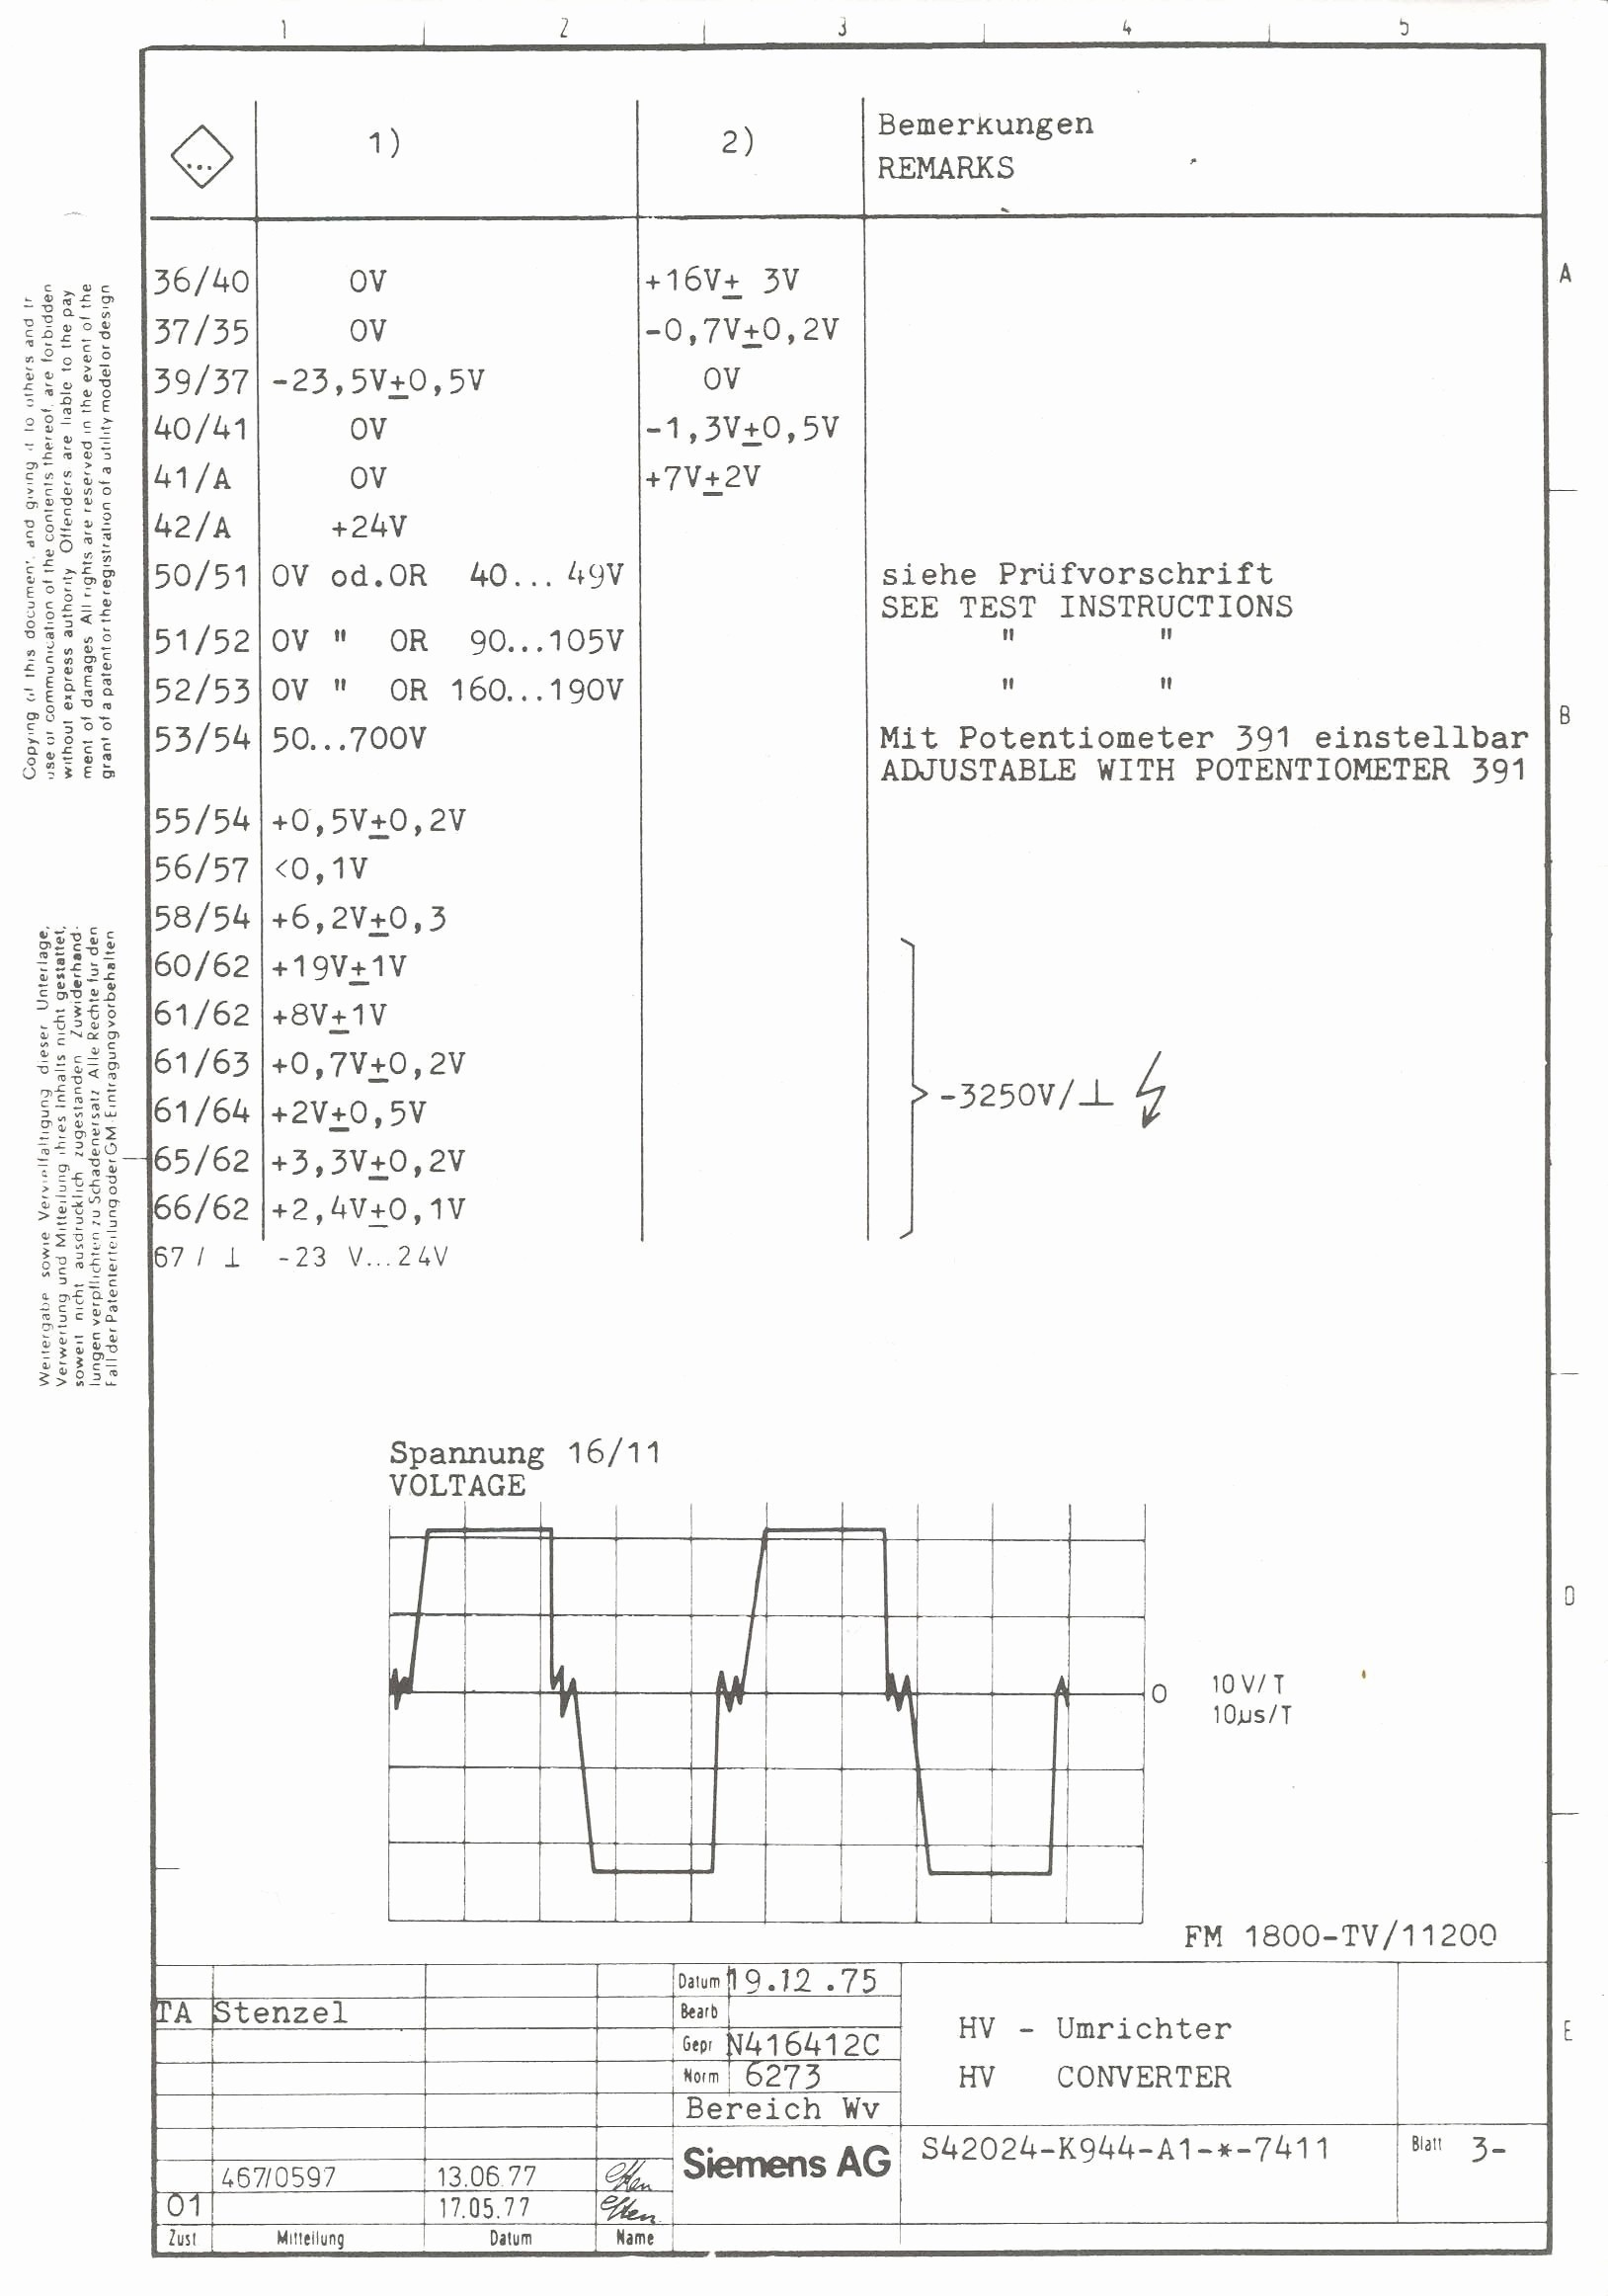 Wiring Diagram for Kenwood Car Stereo Bmw F20 Audio Wiring Diagram Refrence Kenwood Car Stereo Wiring Of Wiring Diagram for Kenwood Car Stereo